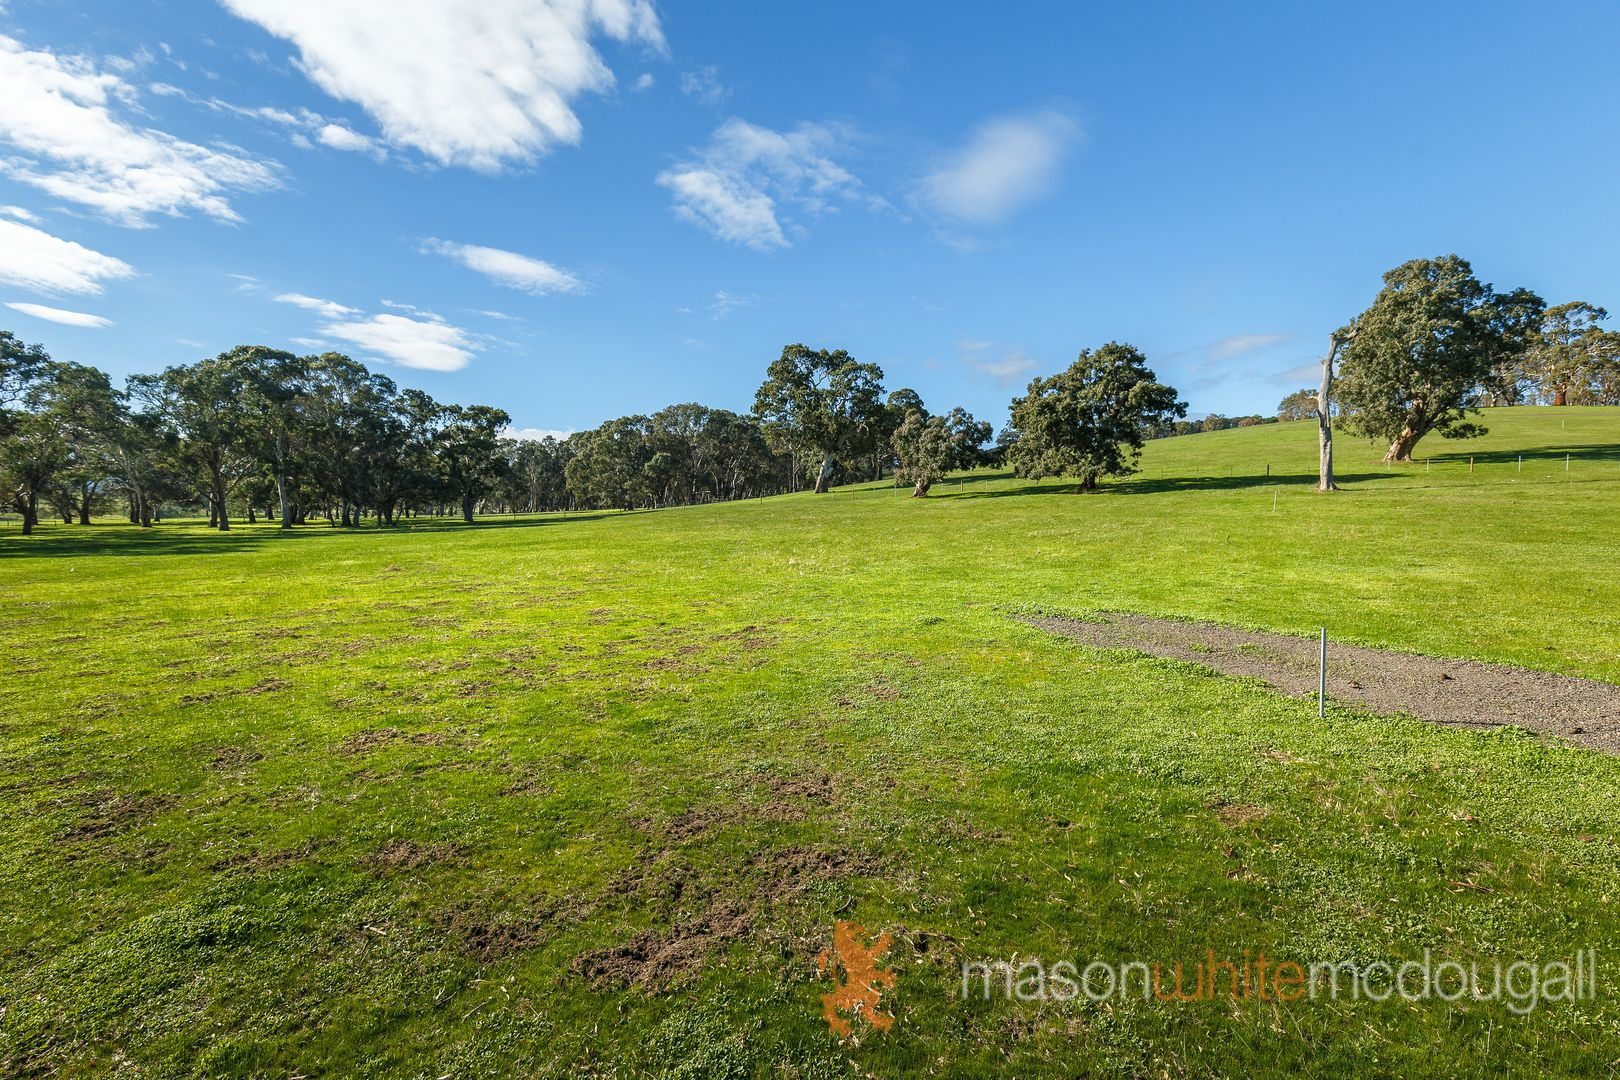 Lot C/183 Cades Road, Yan Yean VIC 3755, Image 1